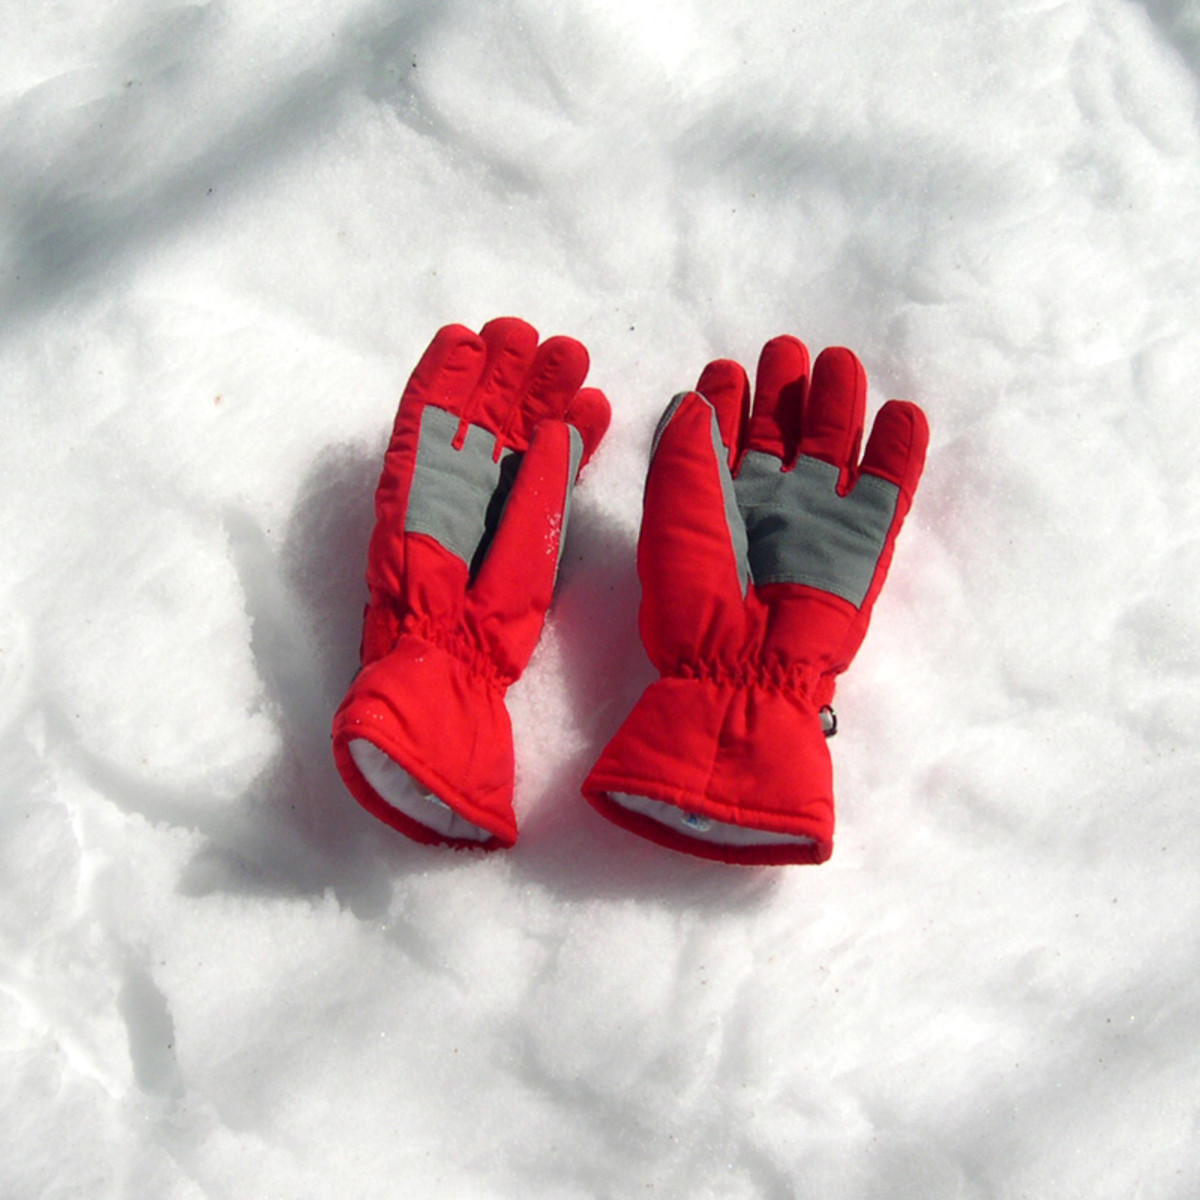 4 of the Best Heated Work Gloves | Battery Warmed Glove Reviews